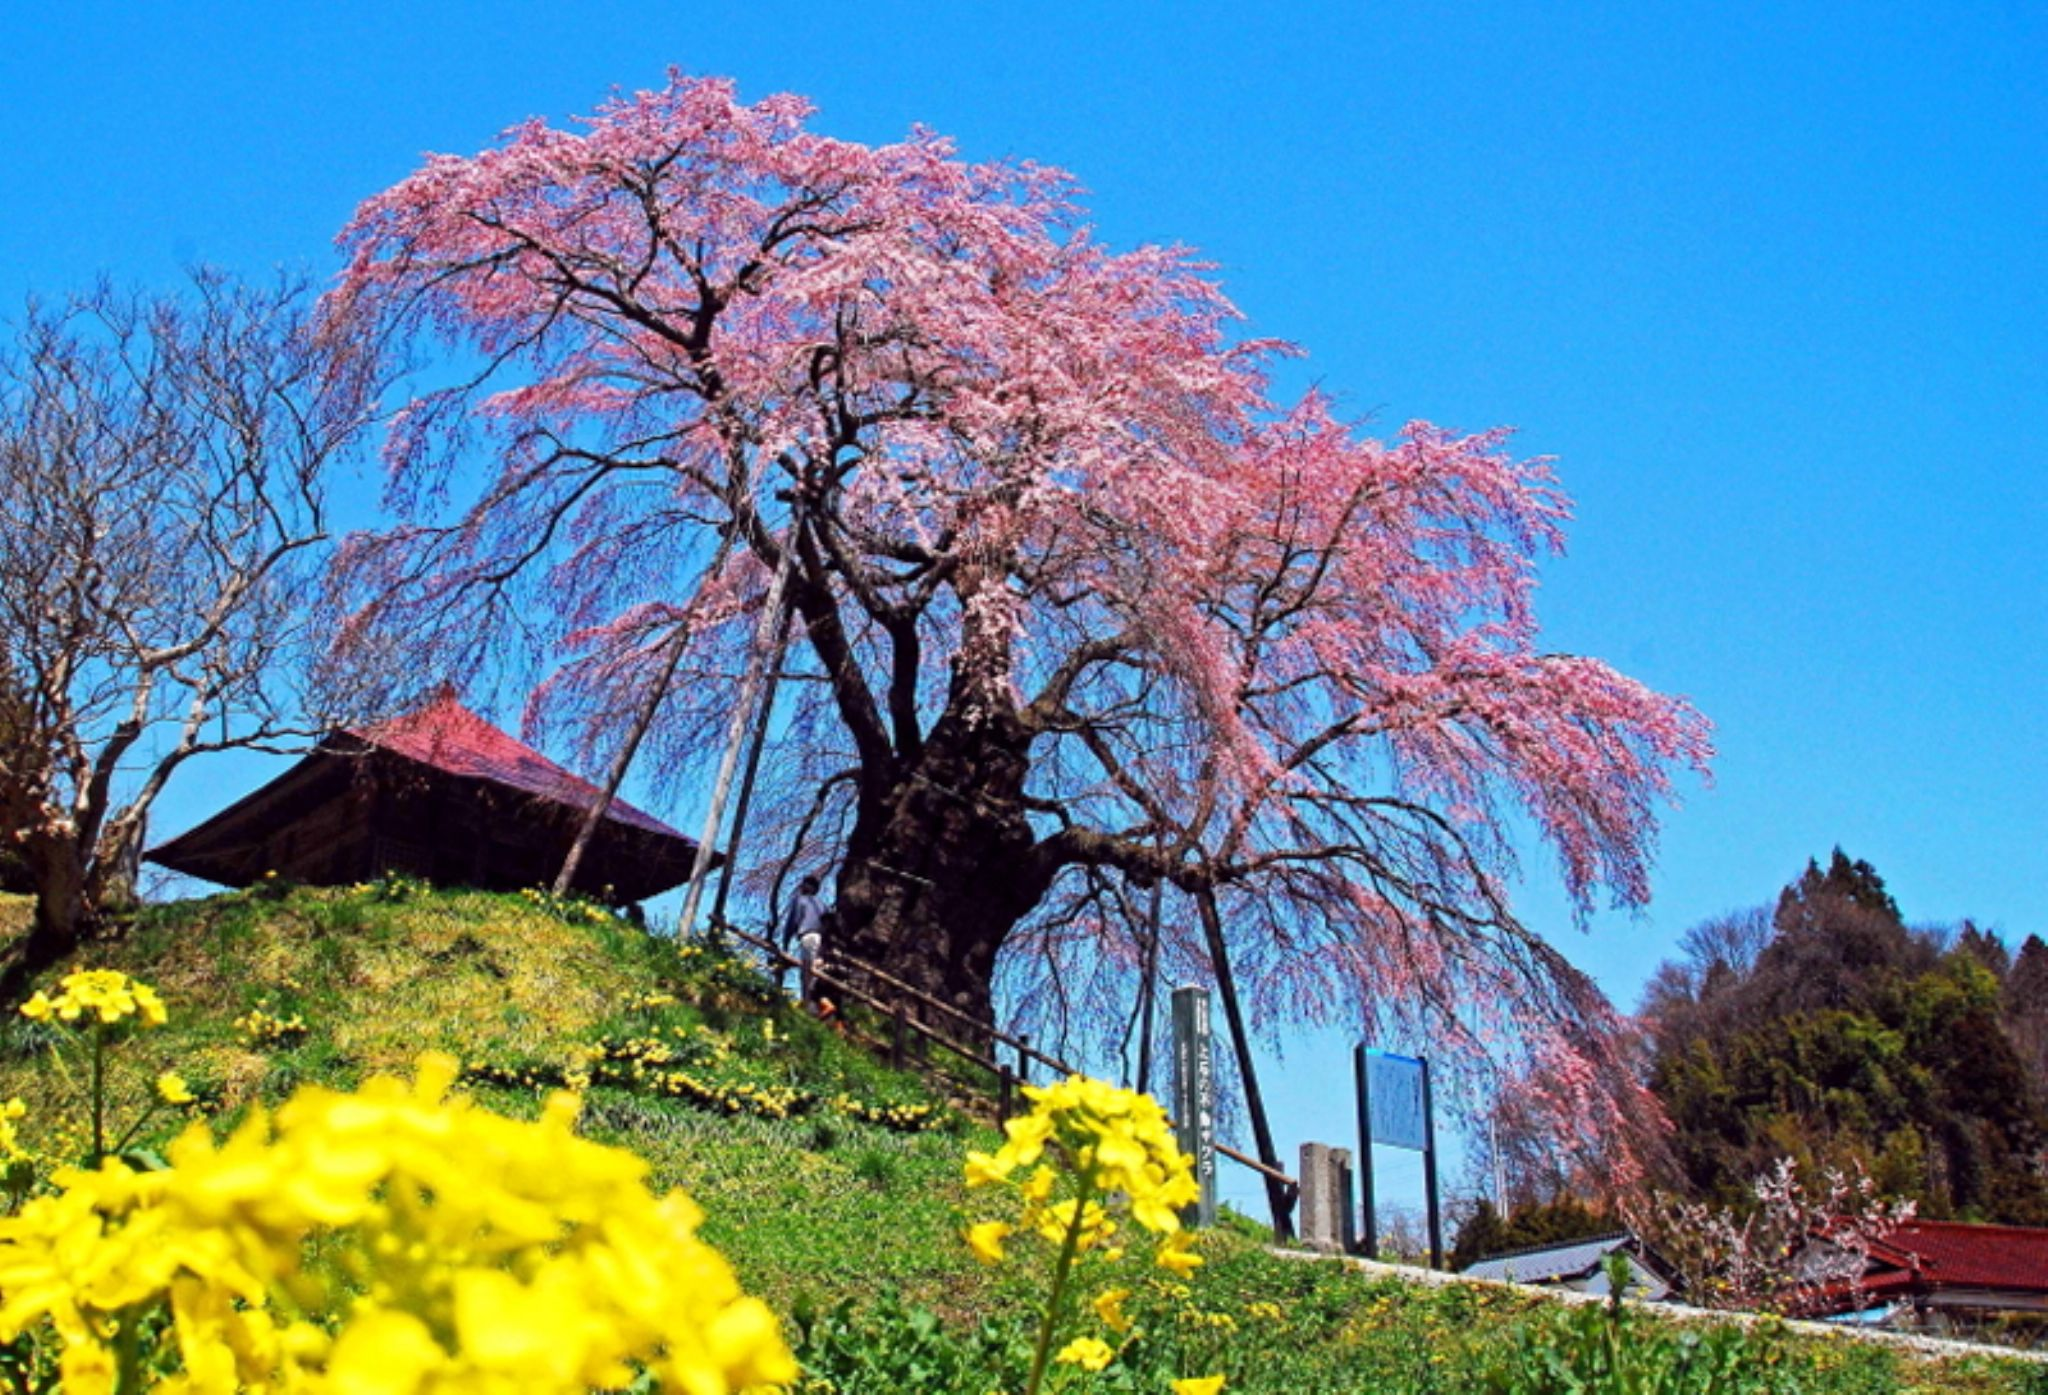 Cherry blossoms in full bloom by photoeene